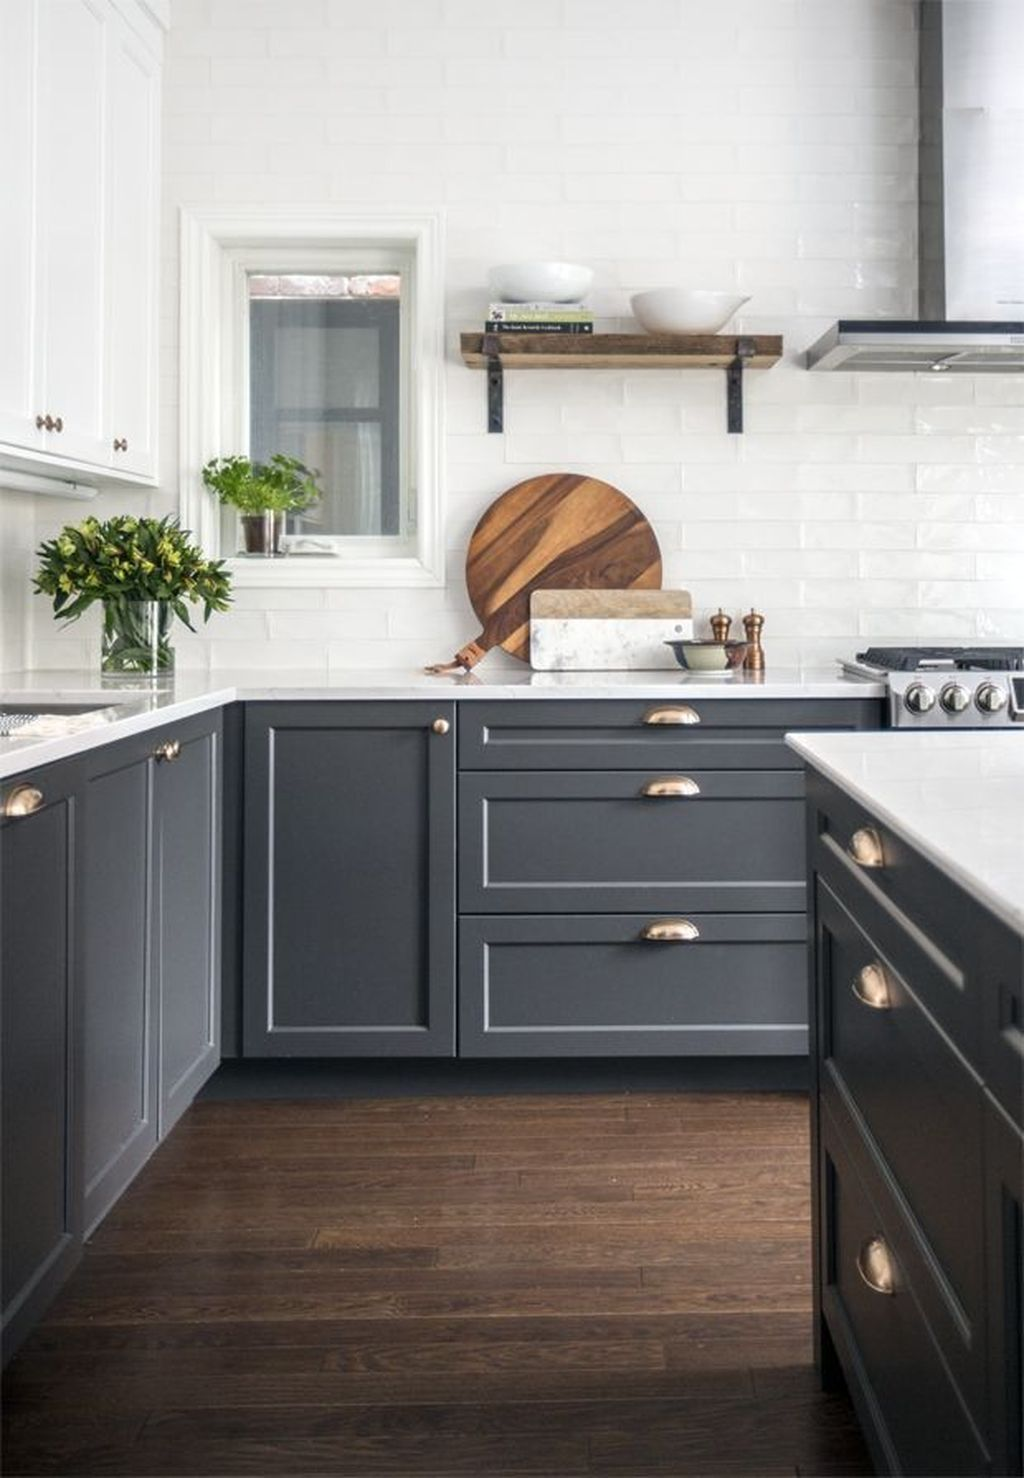 44 popular spring and summer kitchen decor ideas with on incredible kitchen designs that will make you need to repeat yours id=80084